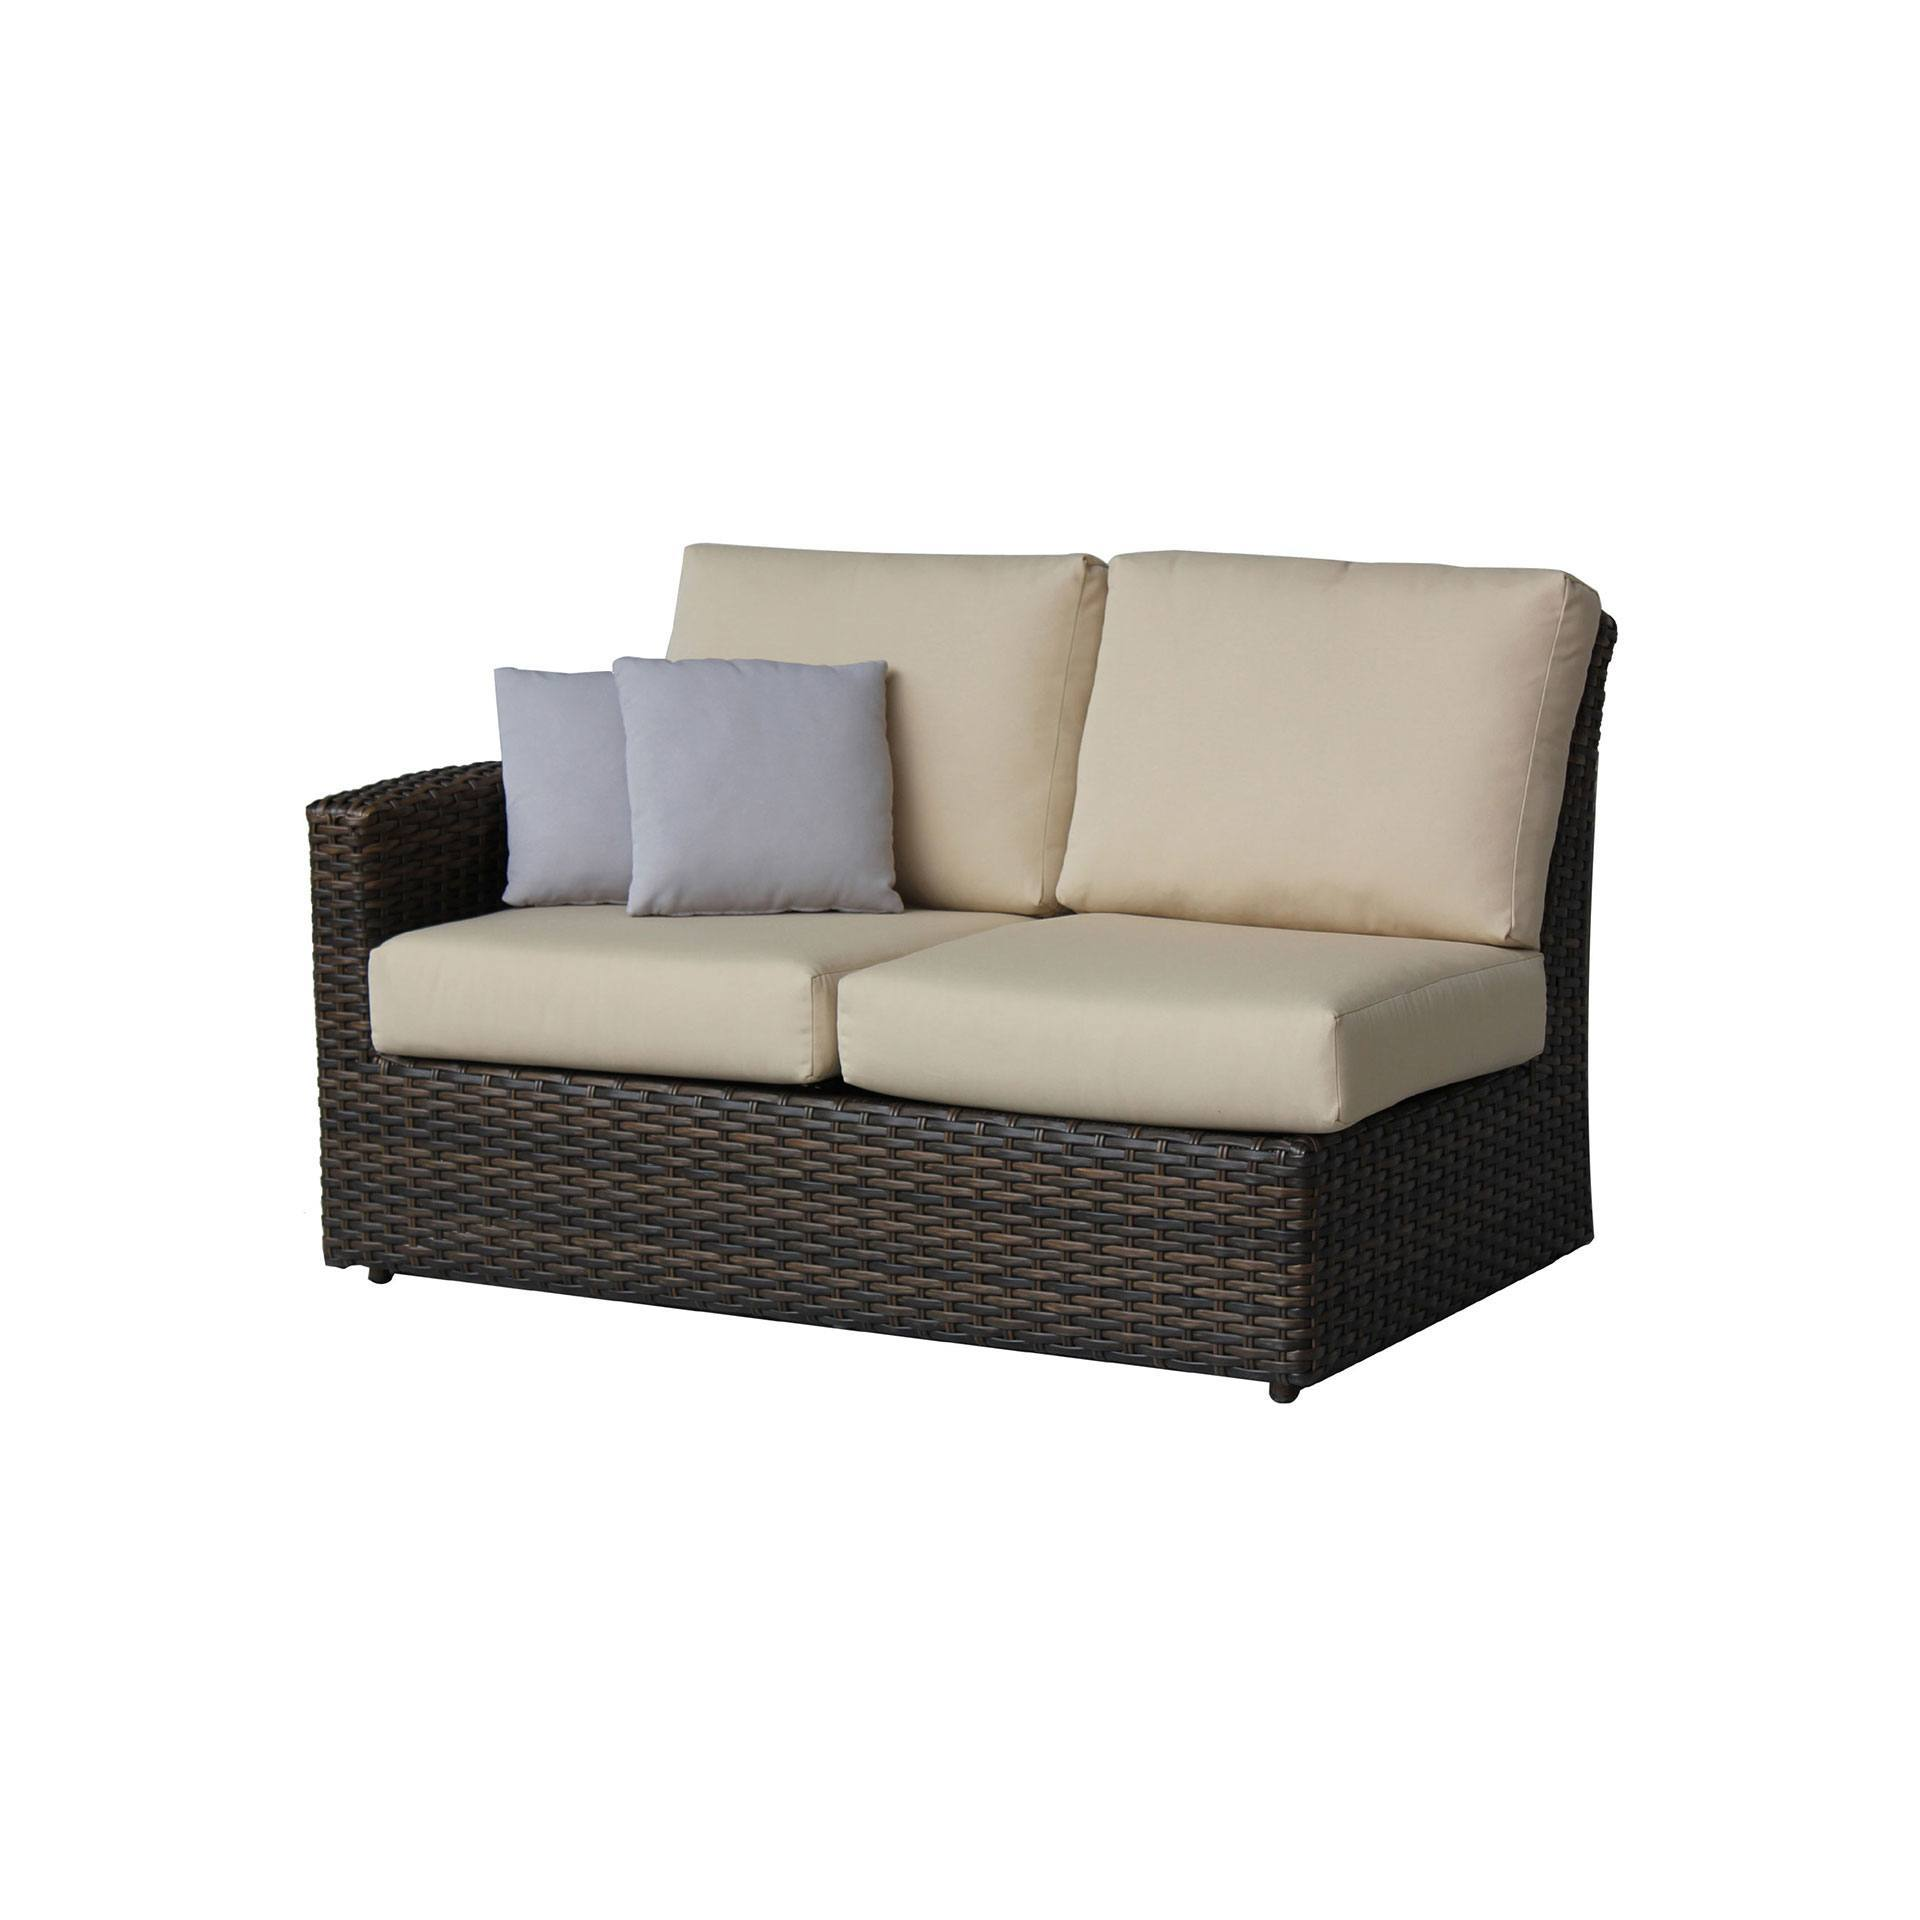 Ratana – Portfino Sectional